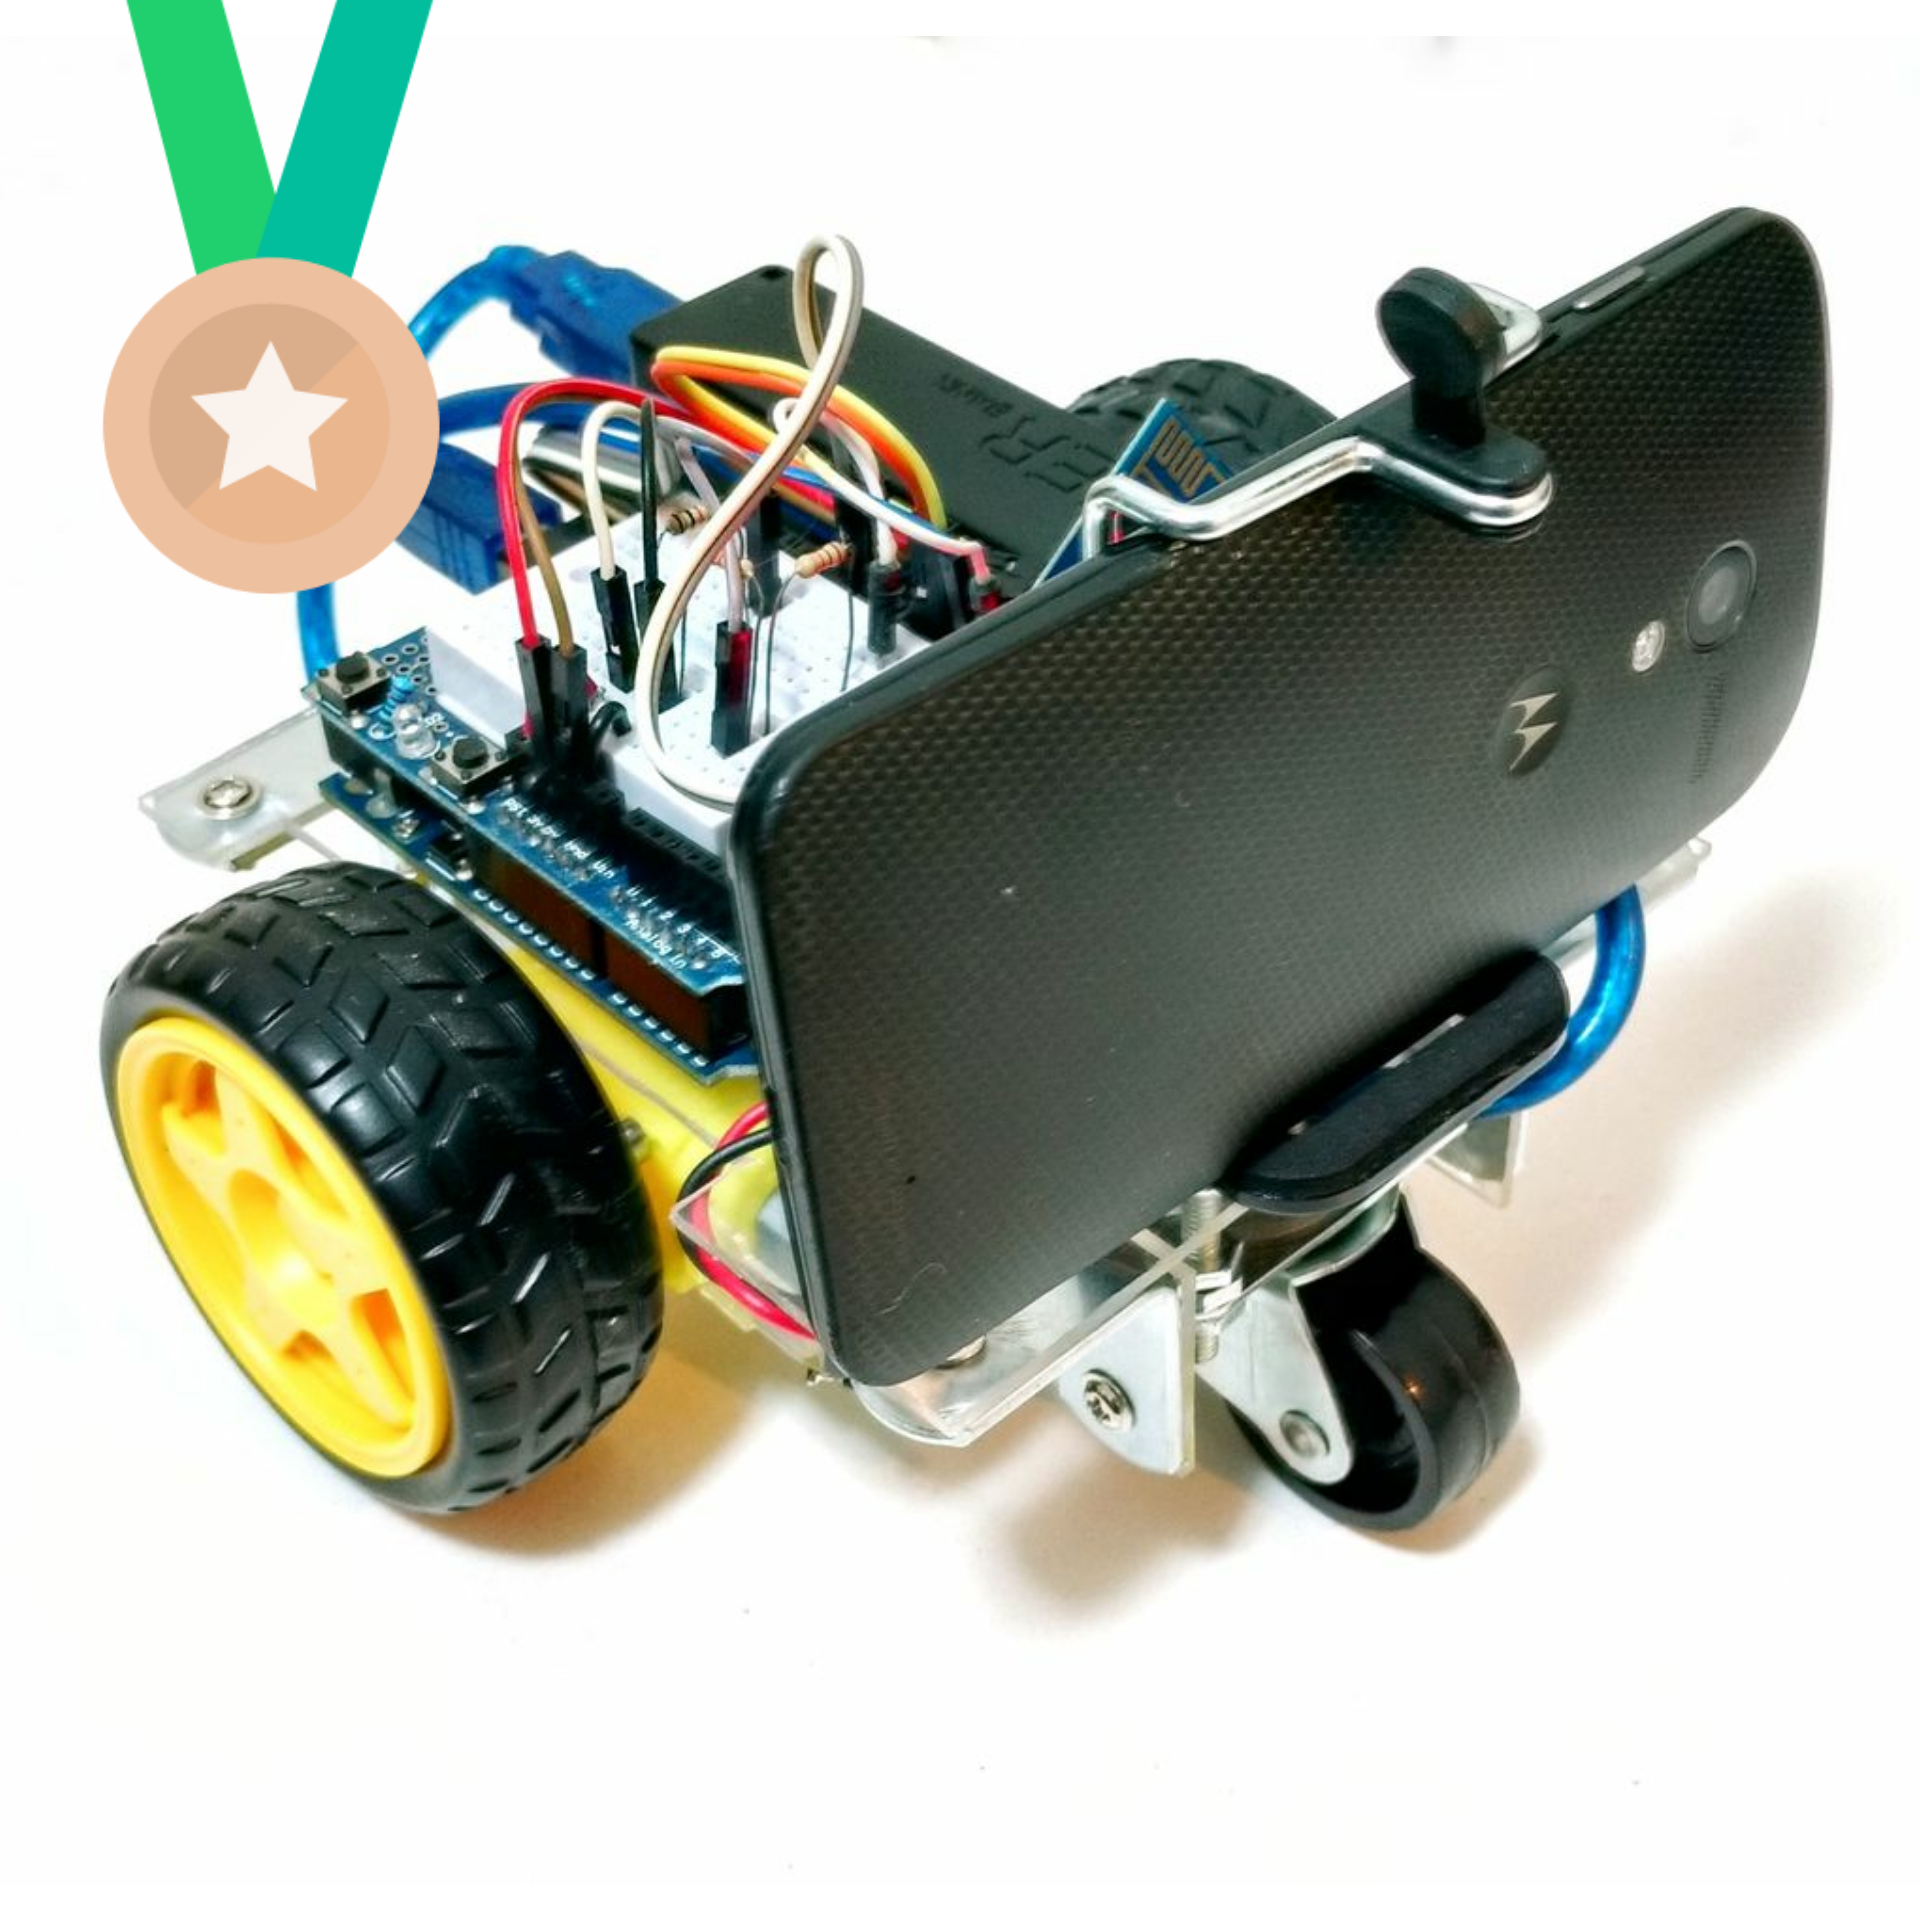 Picture of WiDC - Wi-Fi Controlled FPV Robot (with Arduino, ESP8266 and DC Motors)